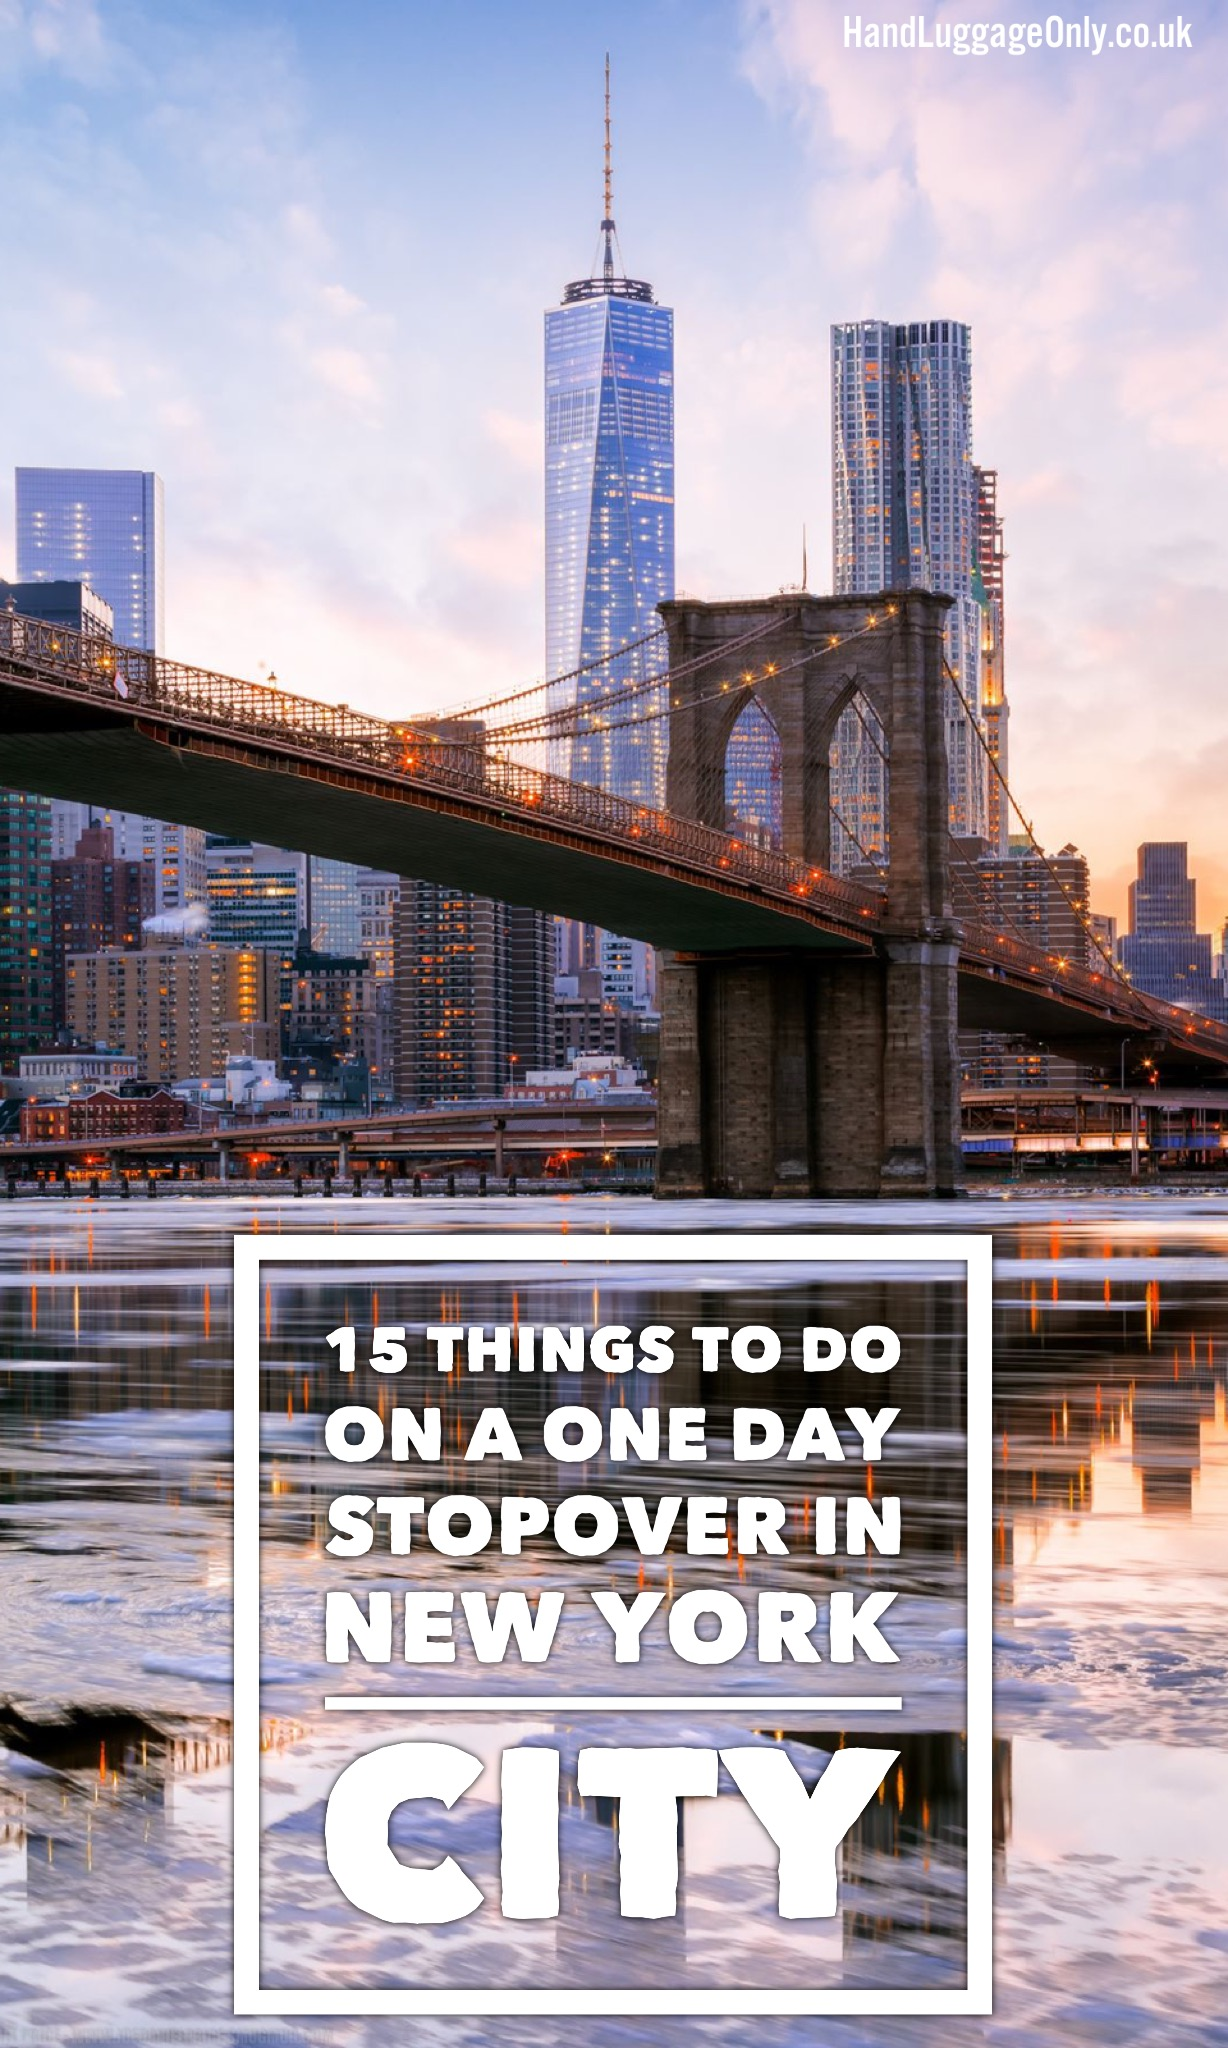 15 Things To Do On Your One Day Stopover In New York City